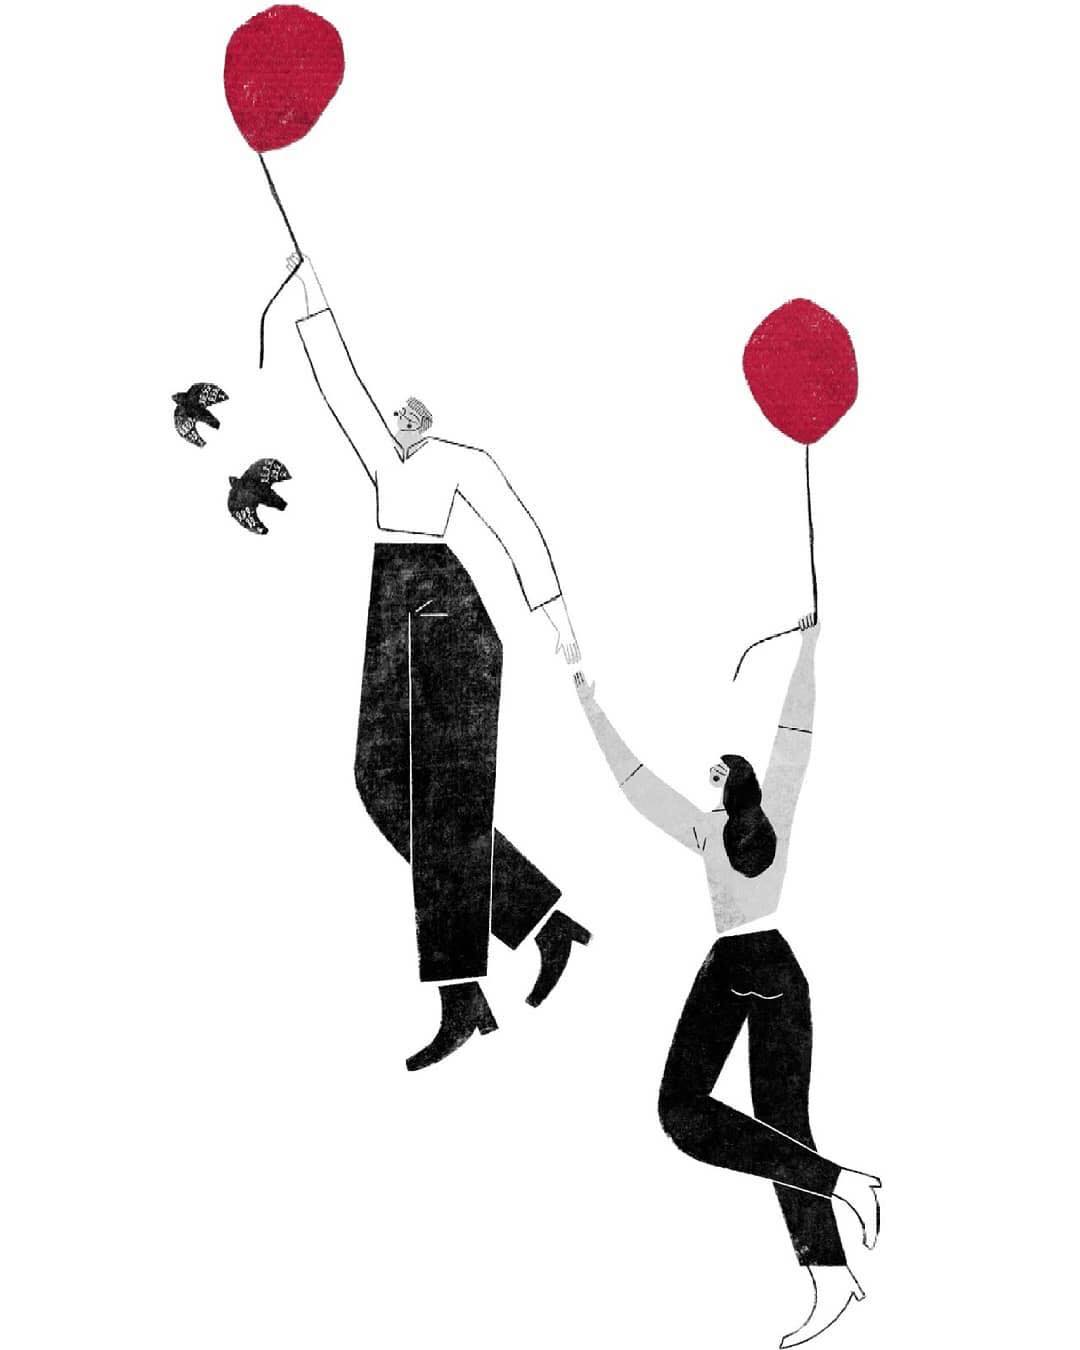 When I found you, my heart found a home.  — Seabird, Falling For You  Artist: Fernando Cobelo